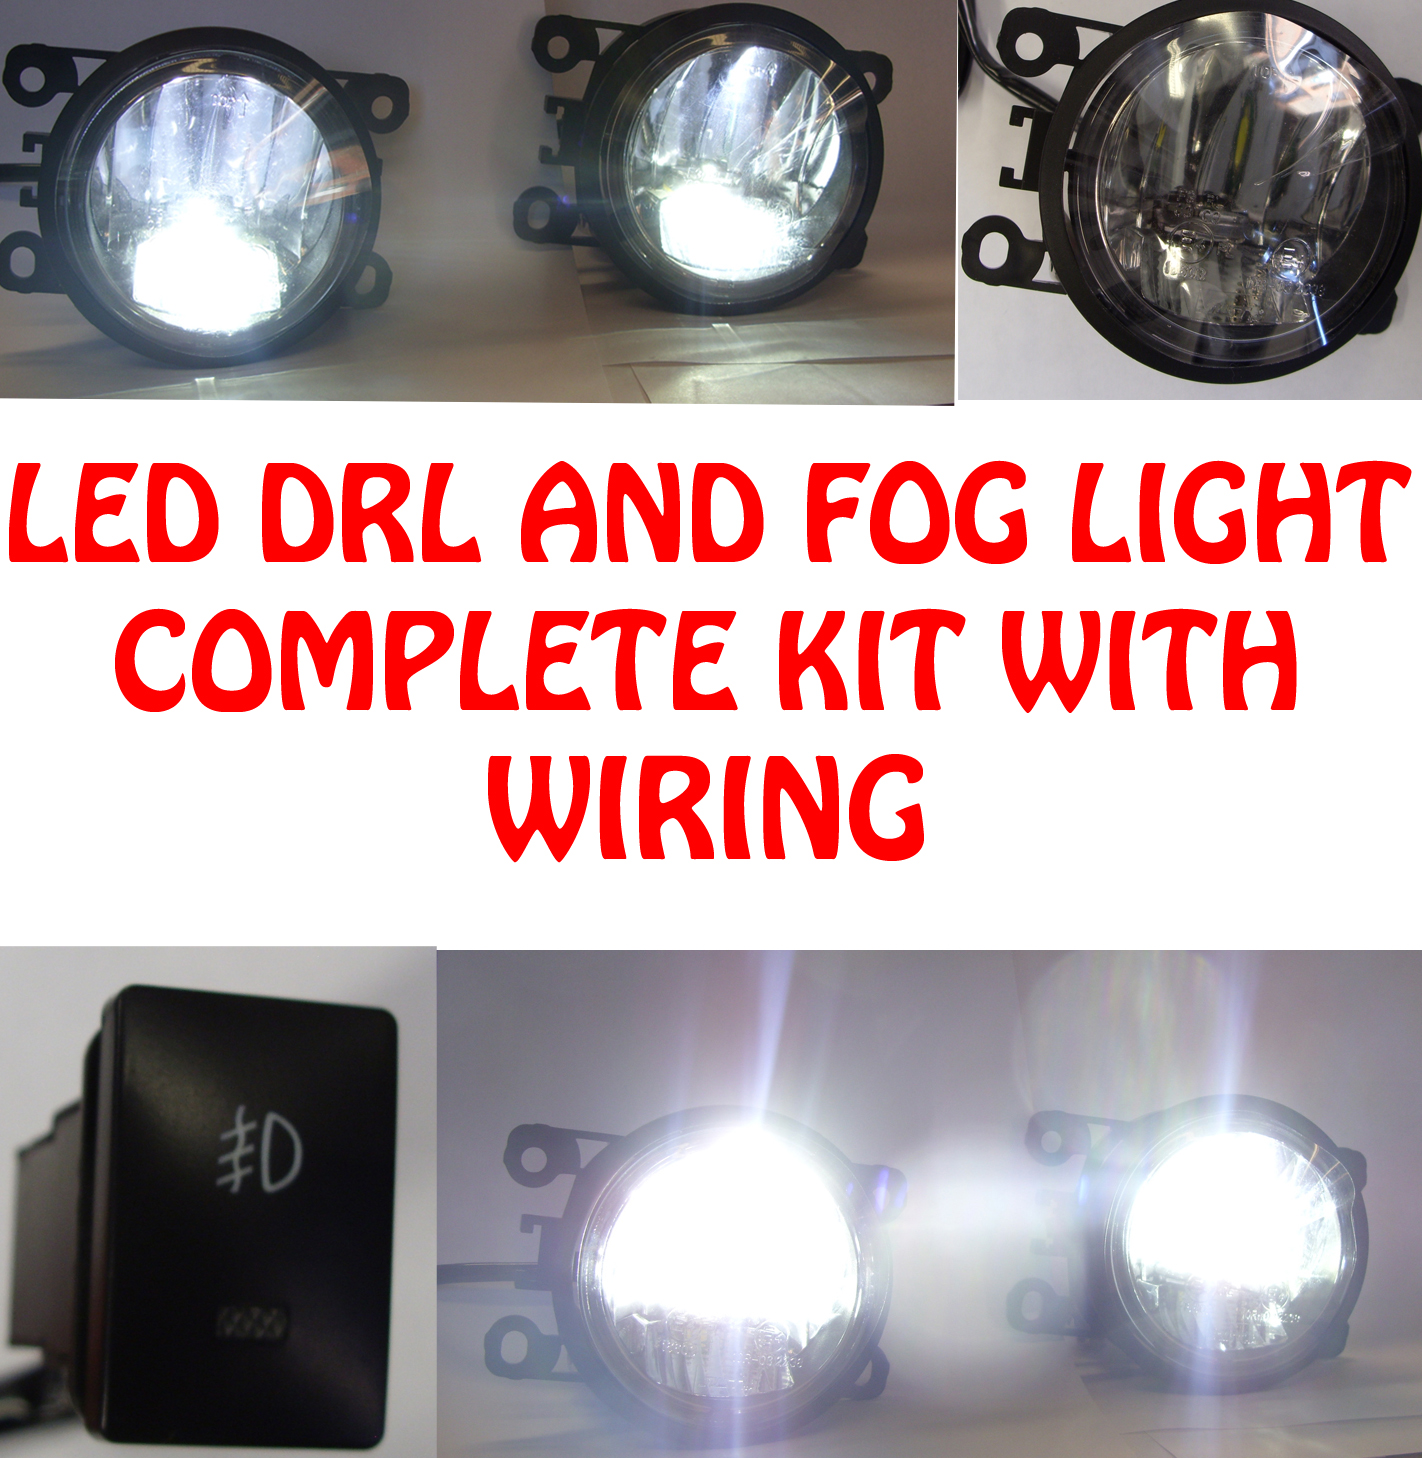 High Power Led Drl And Fog Lights With Wiring Switch For Suzuki Grand Vitara Harness Sentinel Jimny 05